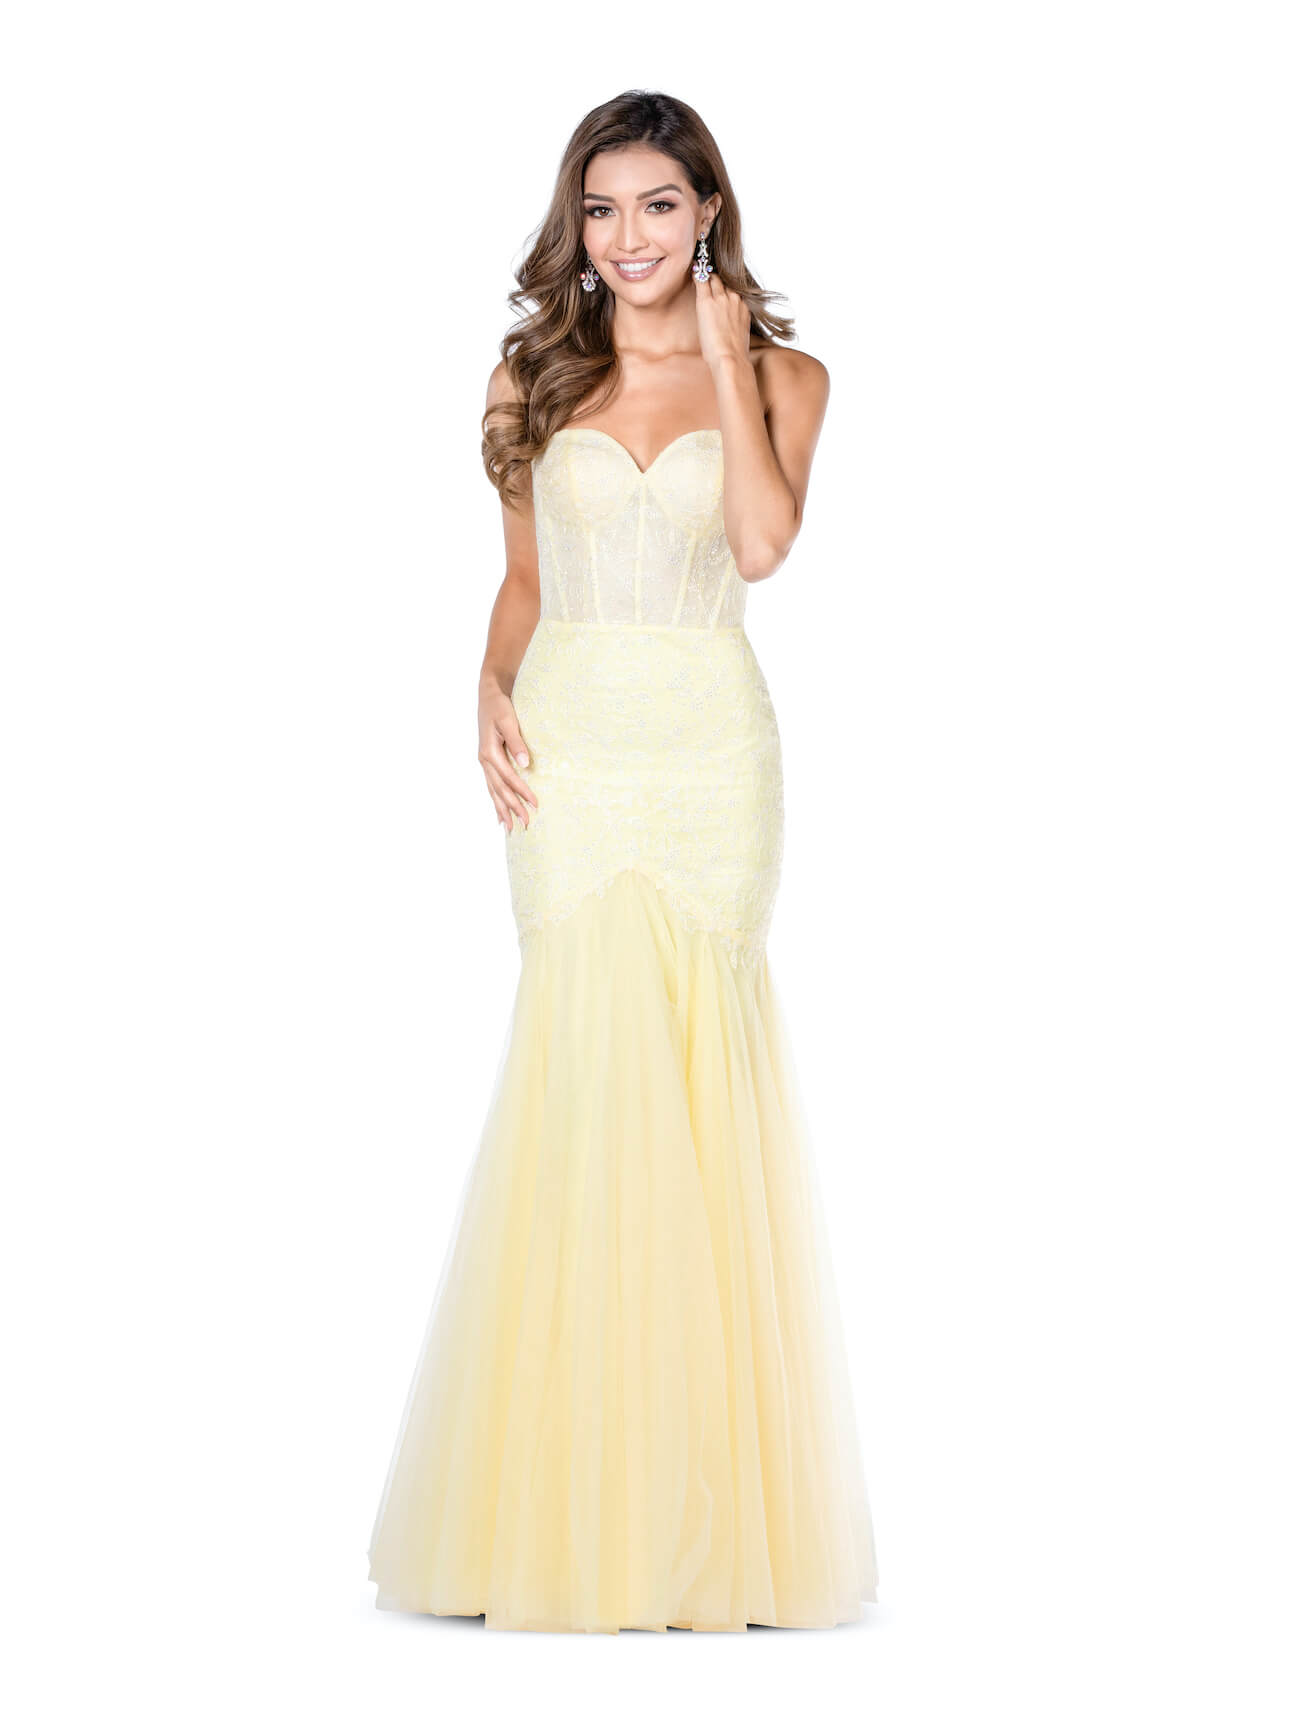 Vienna Yellow Size 10 Corset Sweetheart Mermaid Dress on Queenly